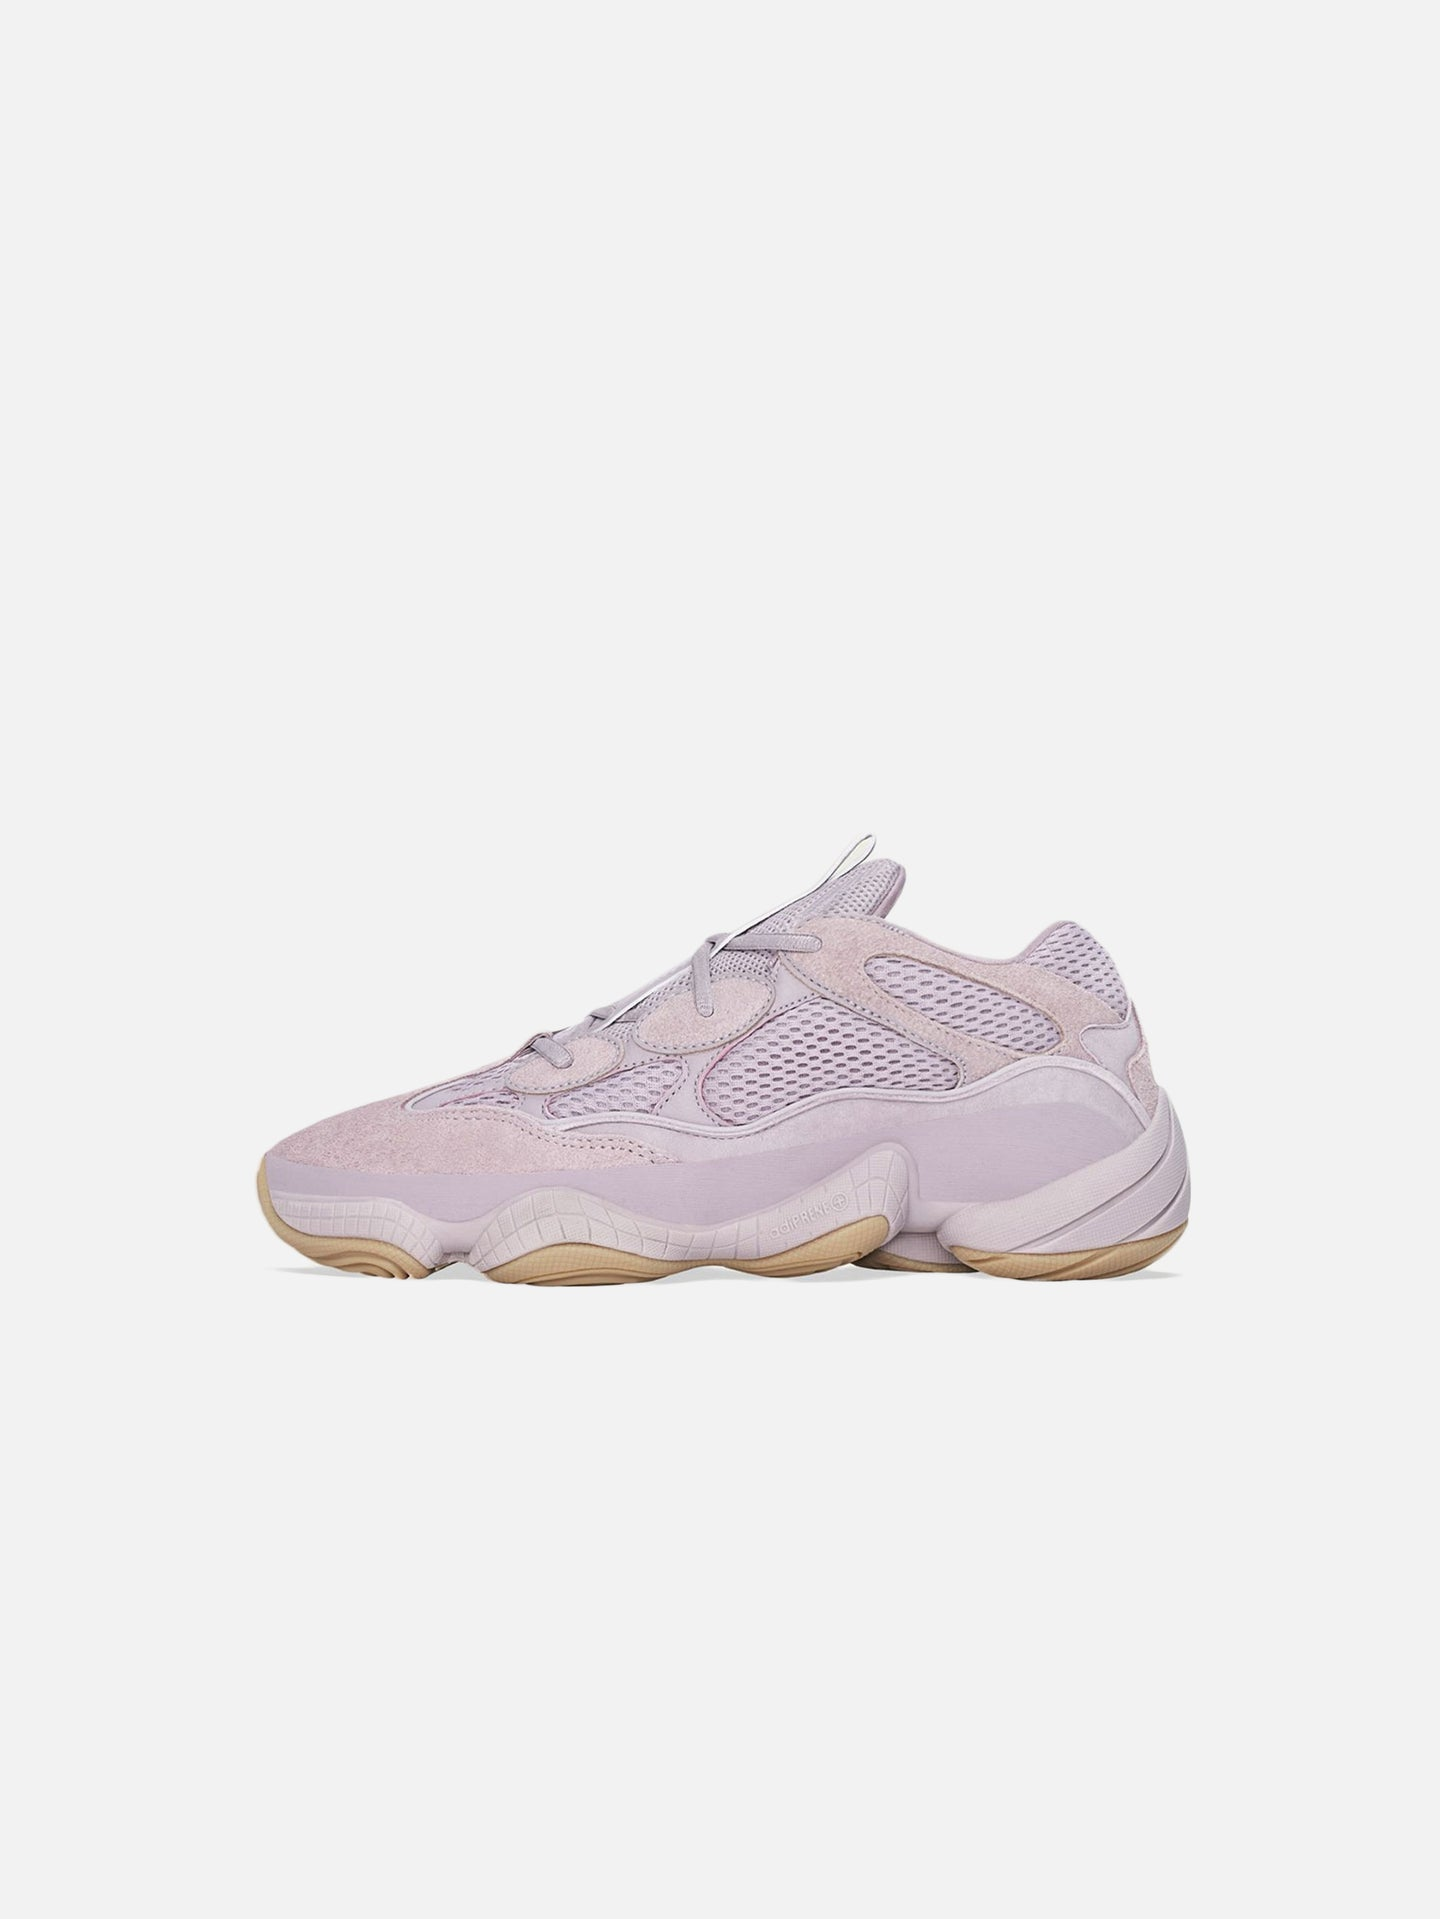 YEEZY 500: SOFT VISION (W)